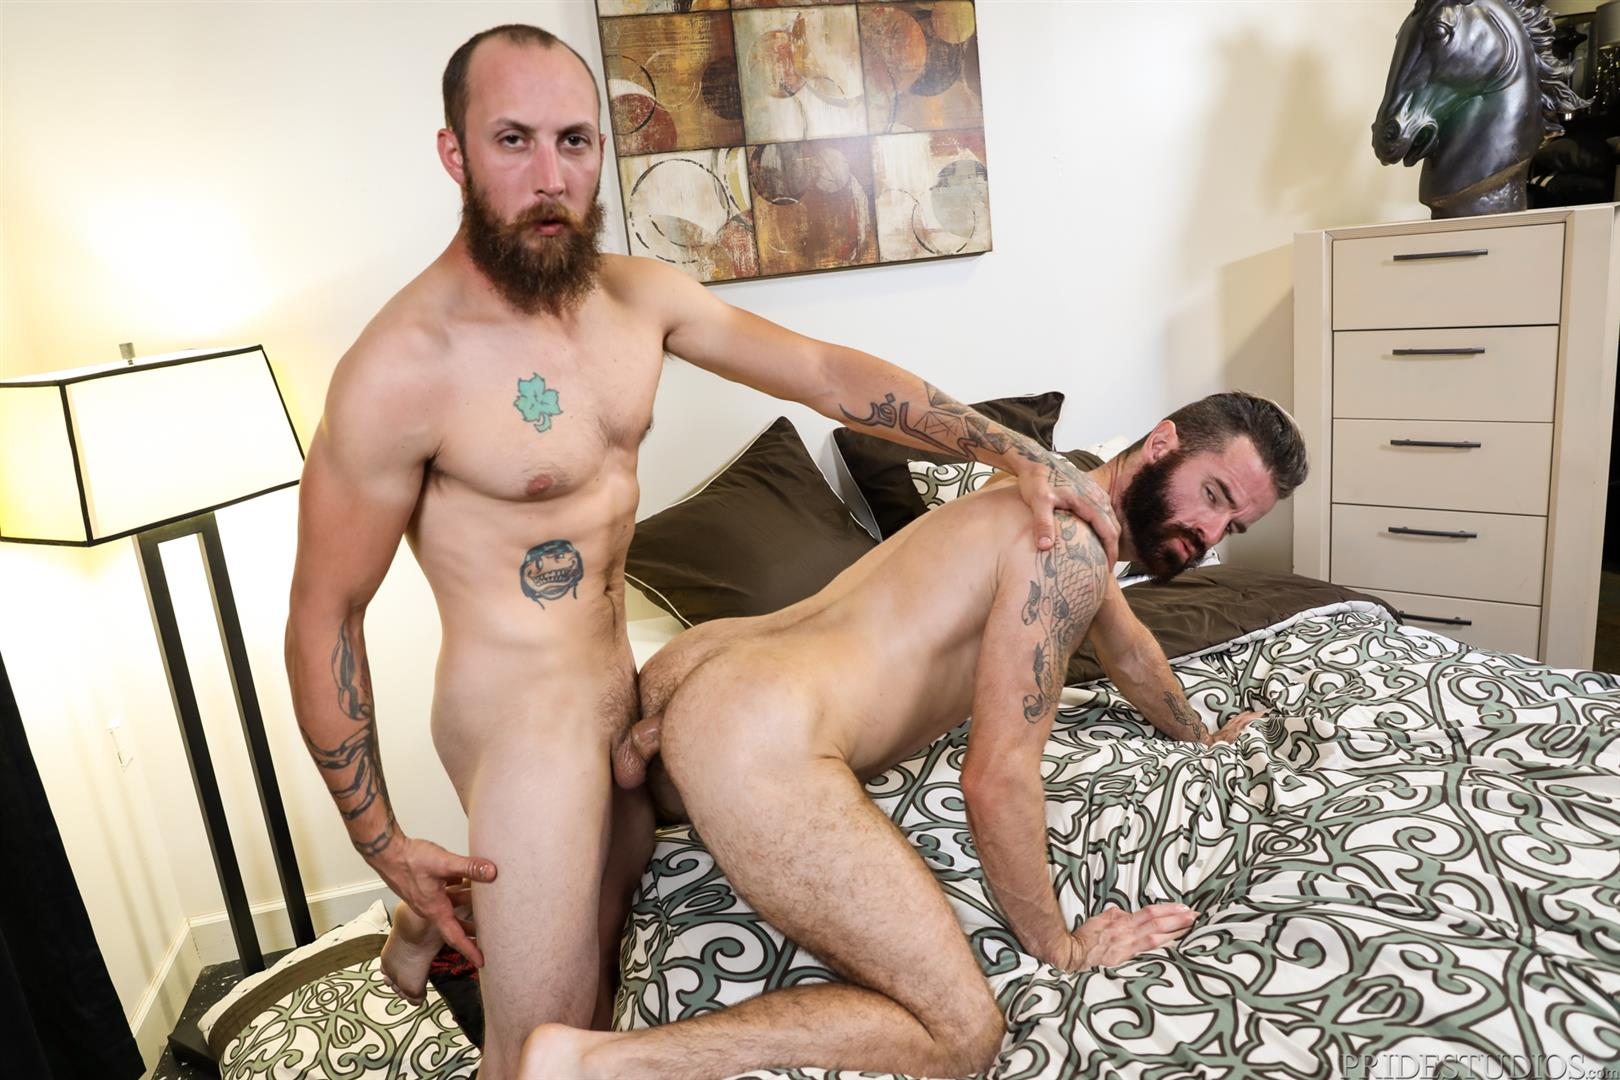 Extra-Big-Dicks-Dustin-Steele-and-Brendan-Patrick-Big-Redneck-Cock-Bareback-Fucking-11 Brendan Patrick Takes Dustin Steele's Raw Redneck Cock